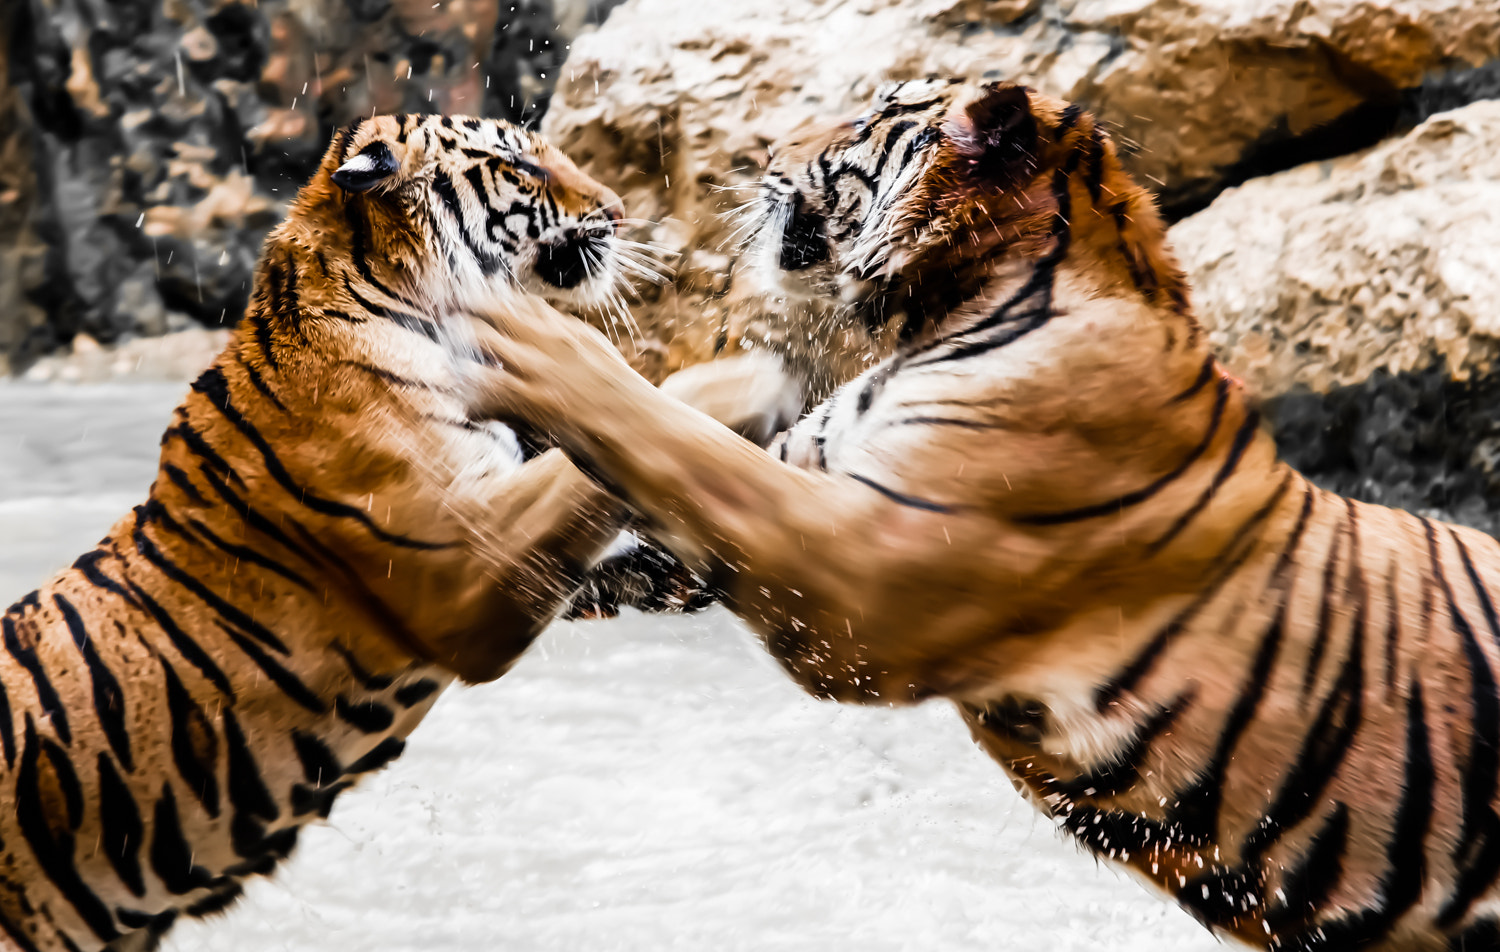 Photograph Tigers fight by Doug Wheller on 500px